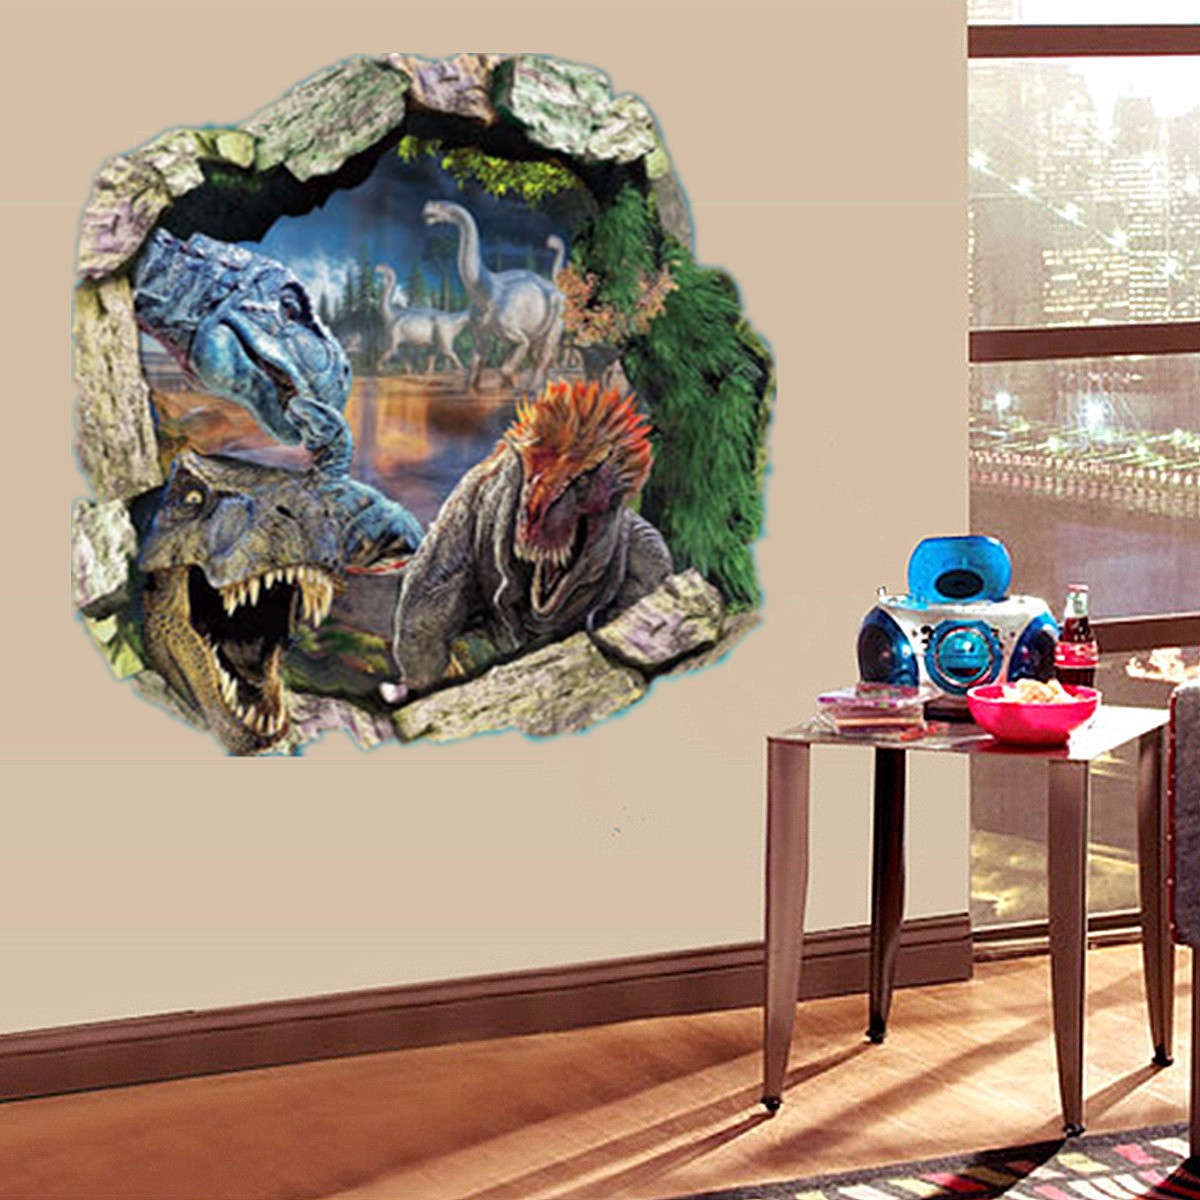 For jurassic park t rex dinosaur 3d wall sticker decal for T rex bedroom decor